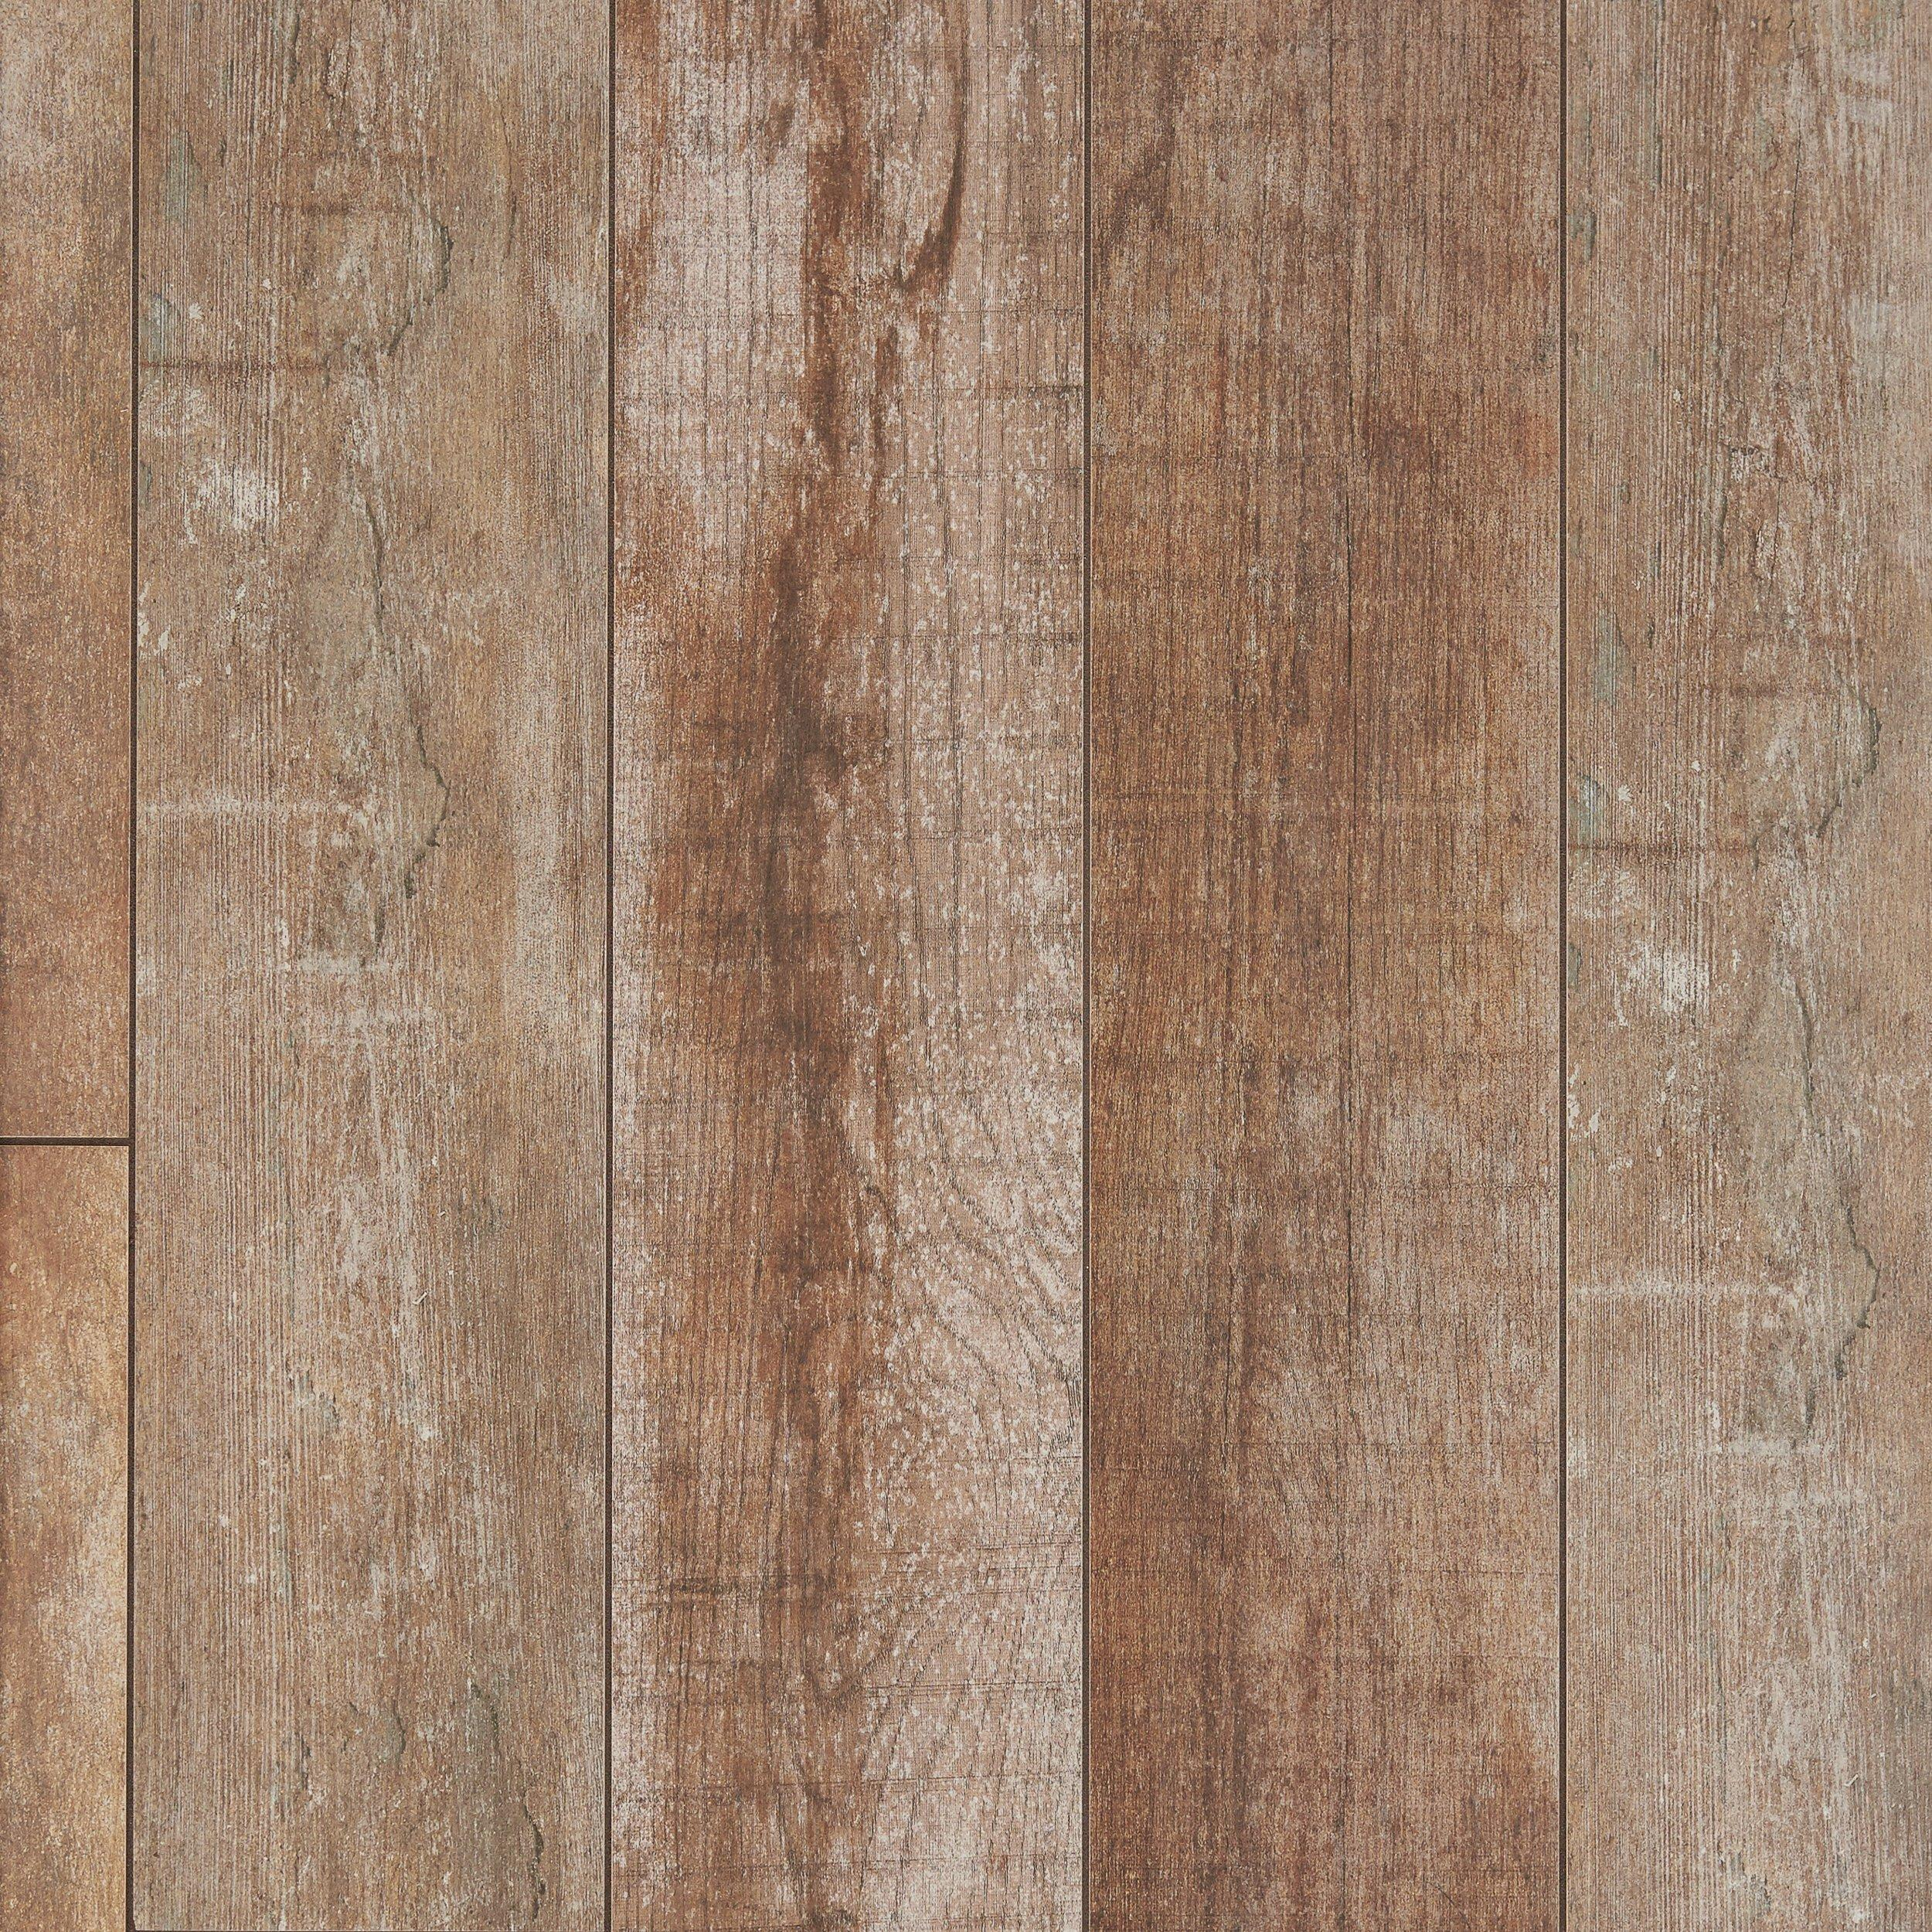 julyo wood plank porcelain tile 8in x 45in floor and decor